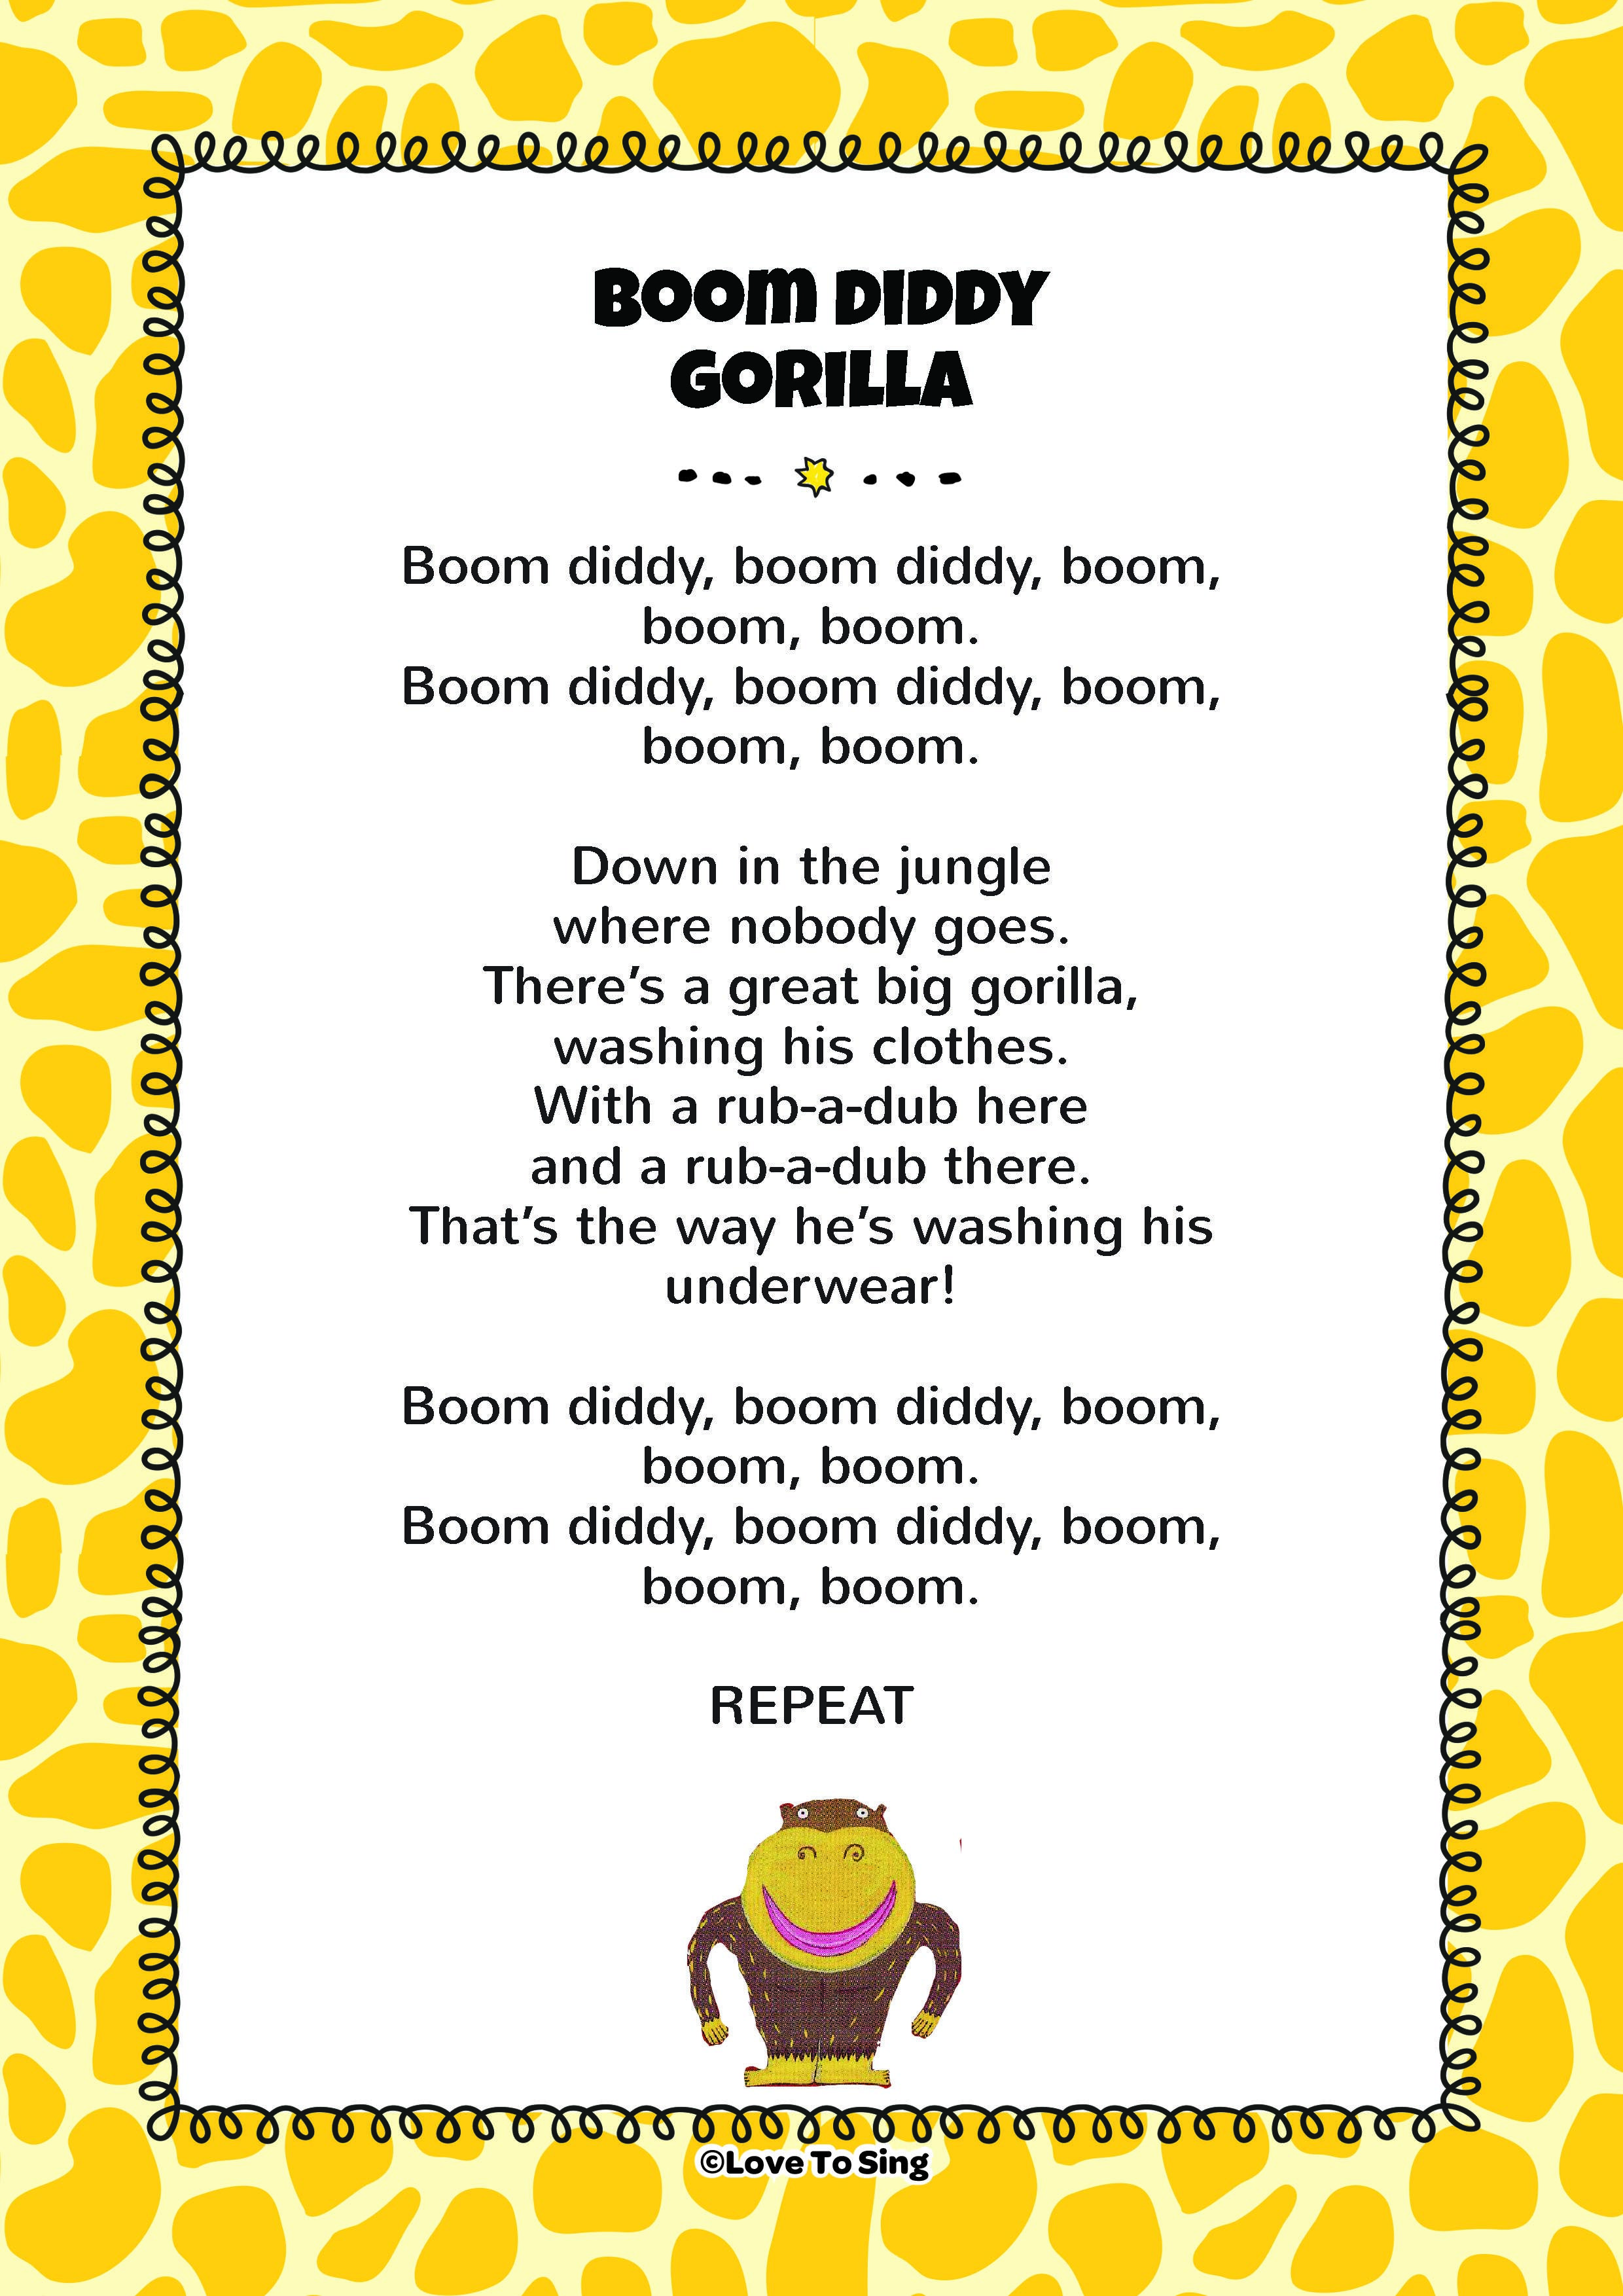 Boom Diddy Gorilla Song | 2018 KMR Letter Poems & Songs